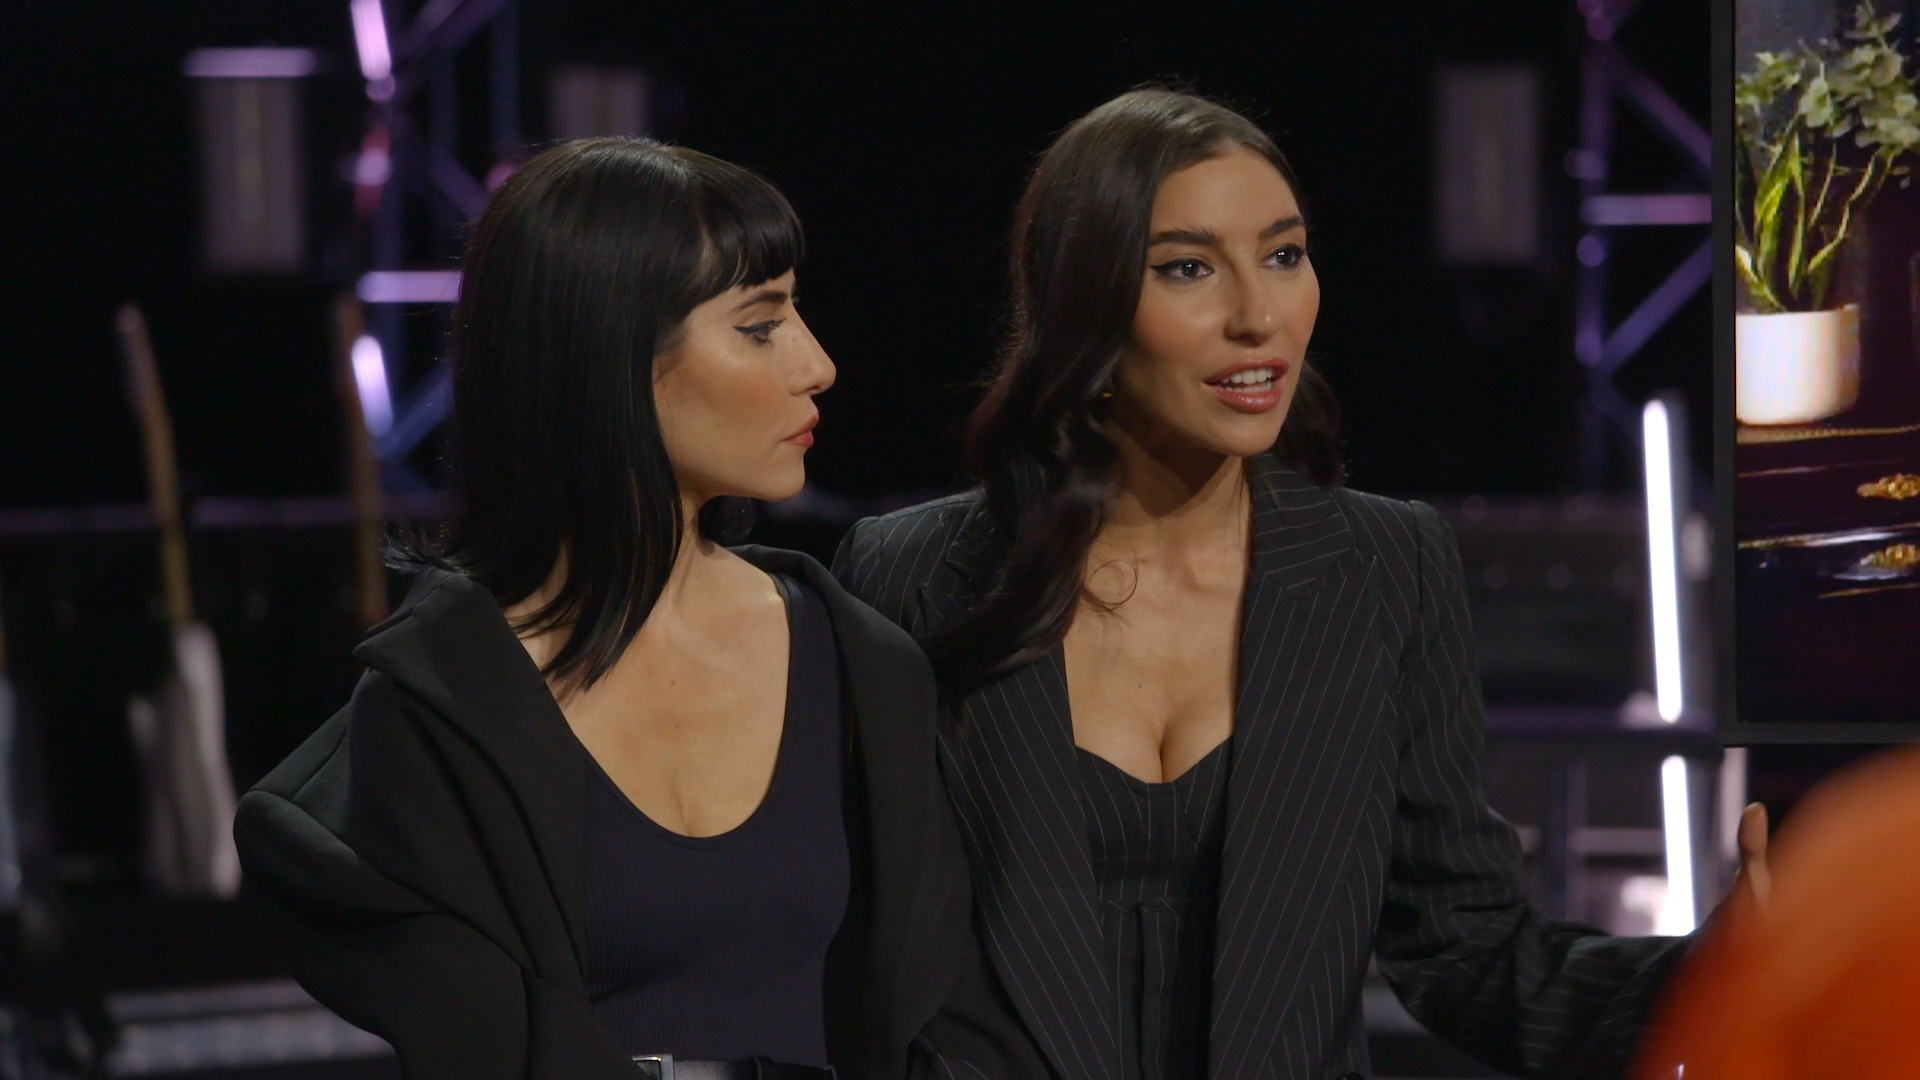 Extended Mentoring: The Veronicas give Virginia a pep talk in tearful mentoring session